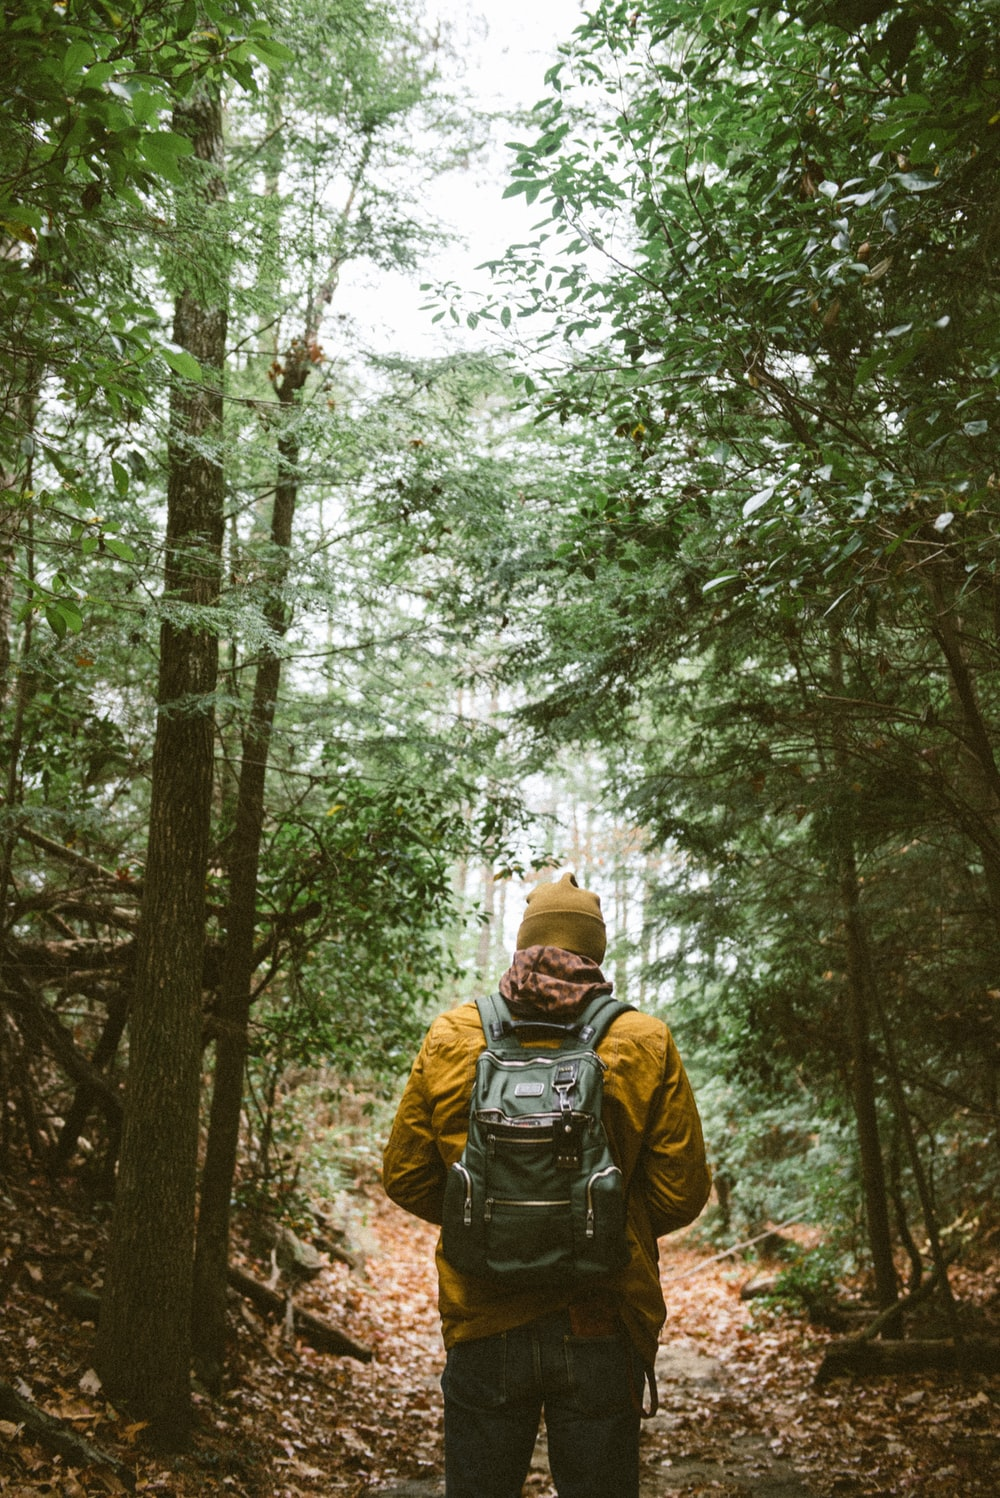 person with backpack walking through woods